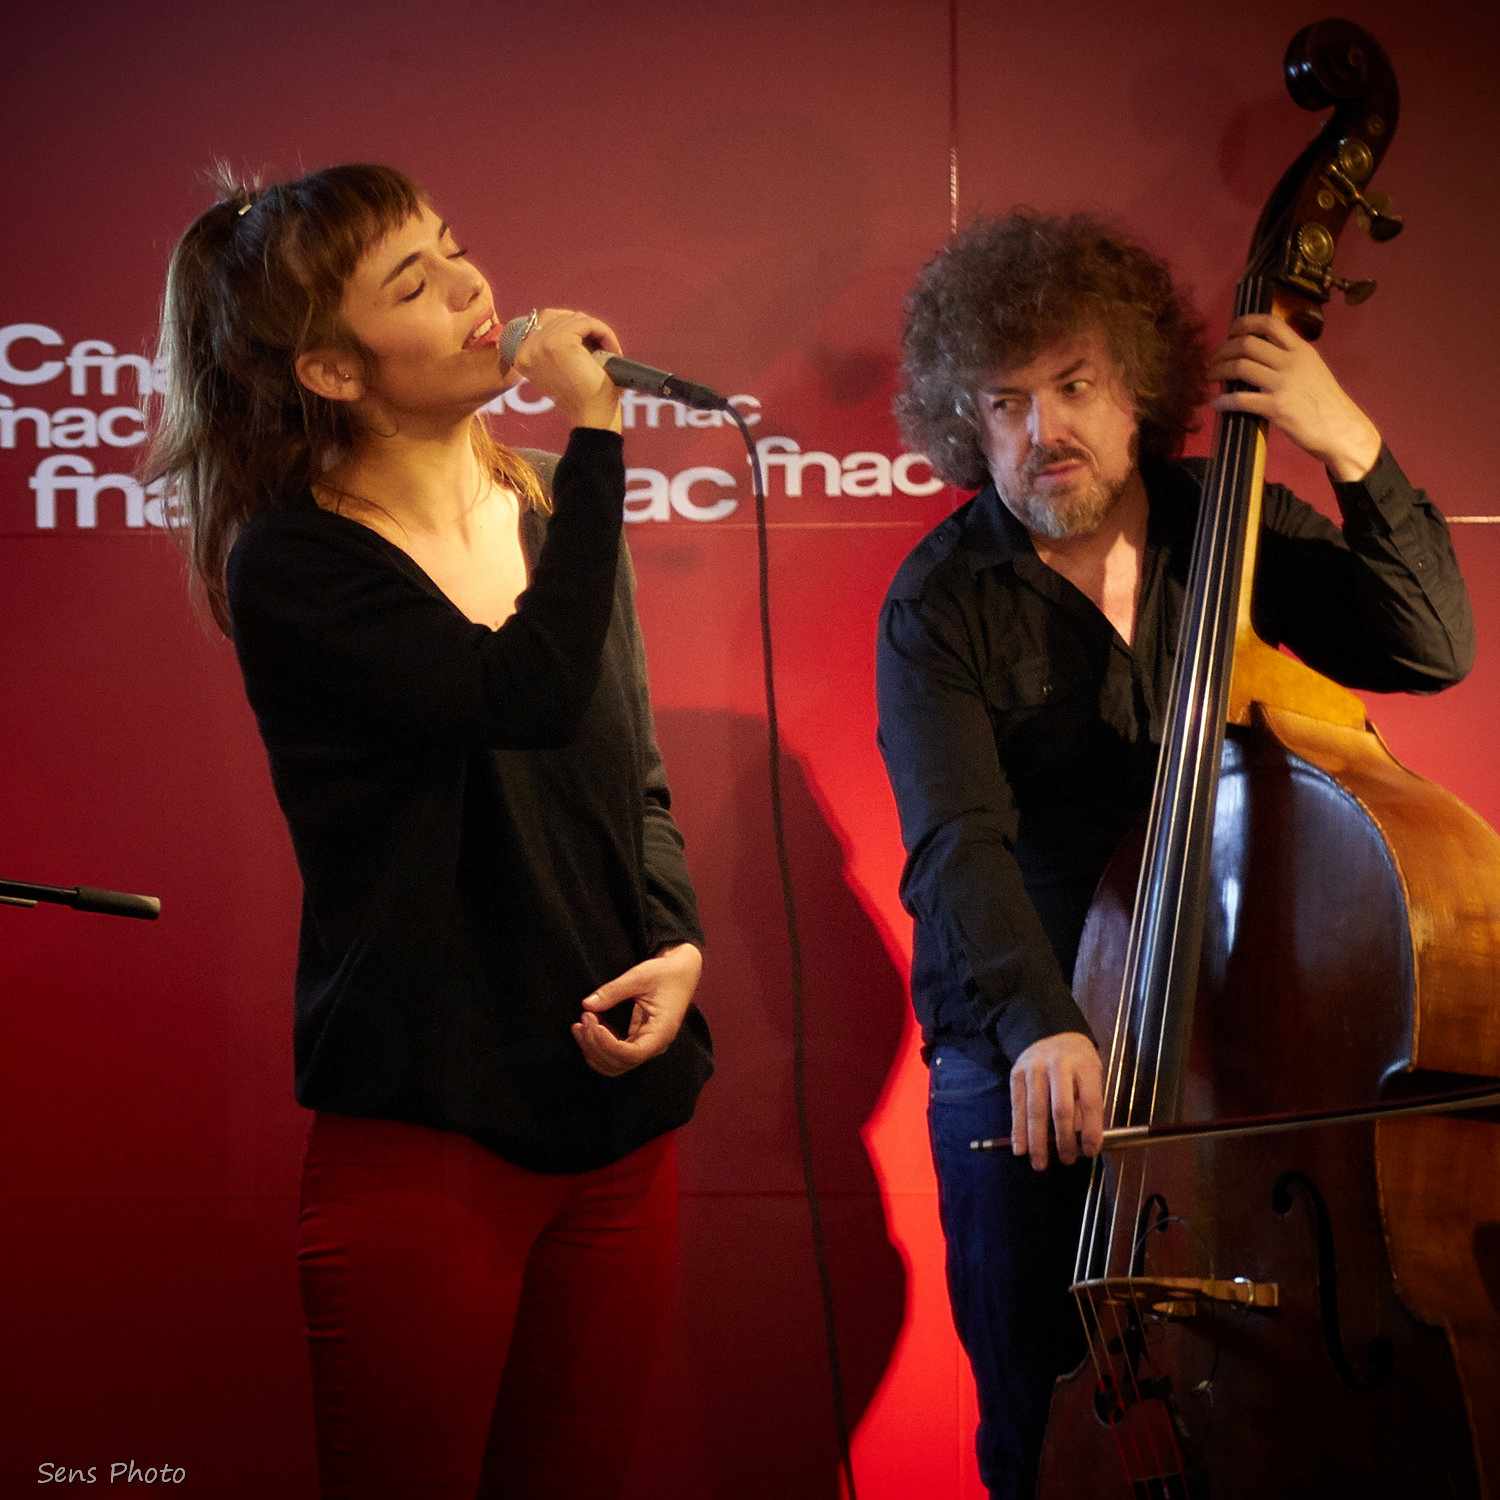 Camille Bertault chante à Paris en showcase